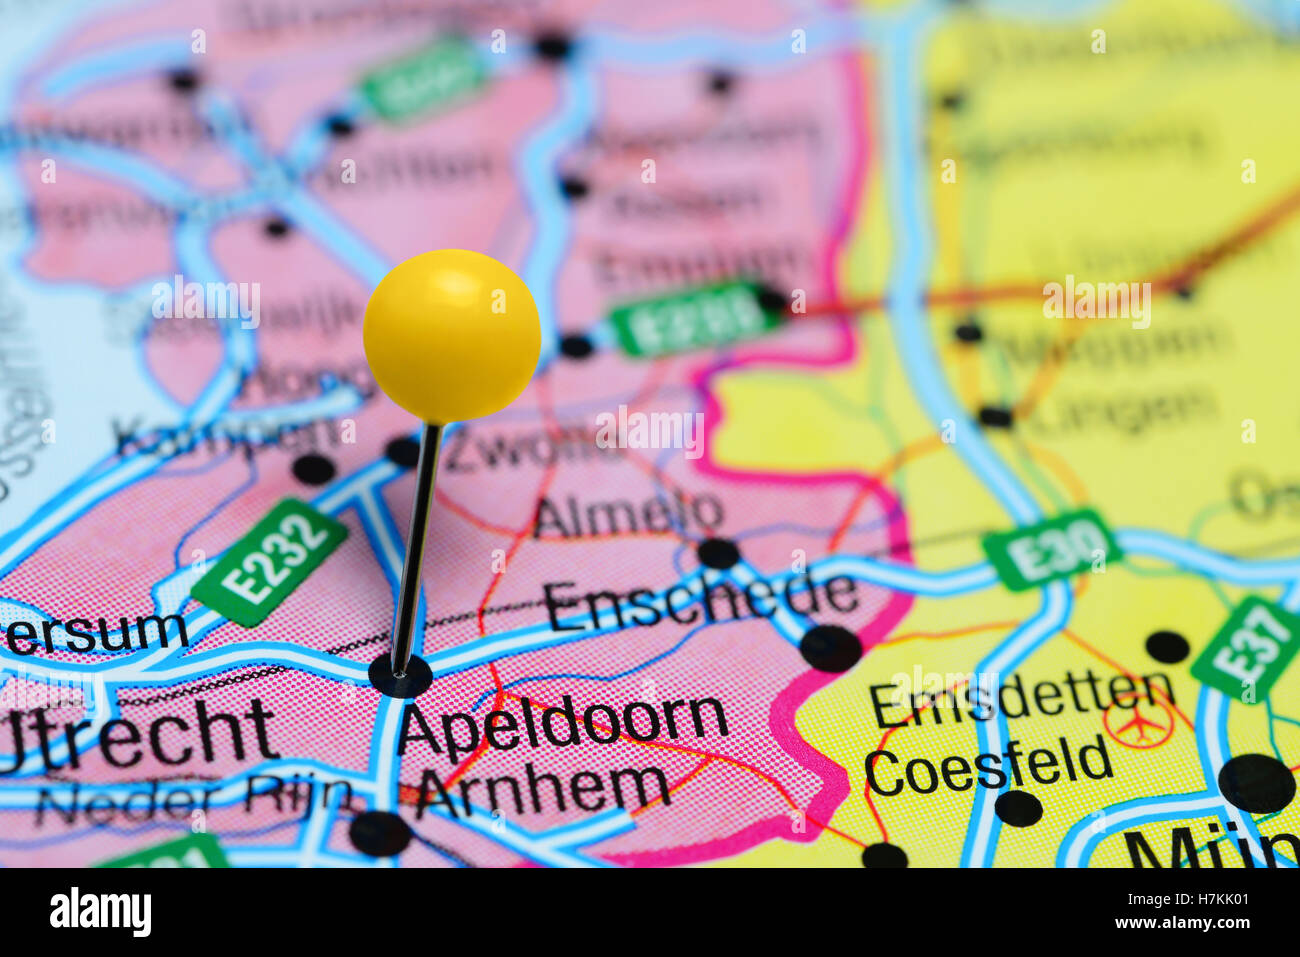 Apeldoorn pinned on a map of Netherlands Stock Photo 125207153 Alamy